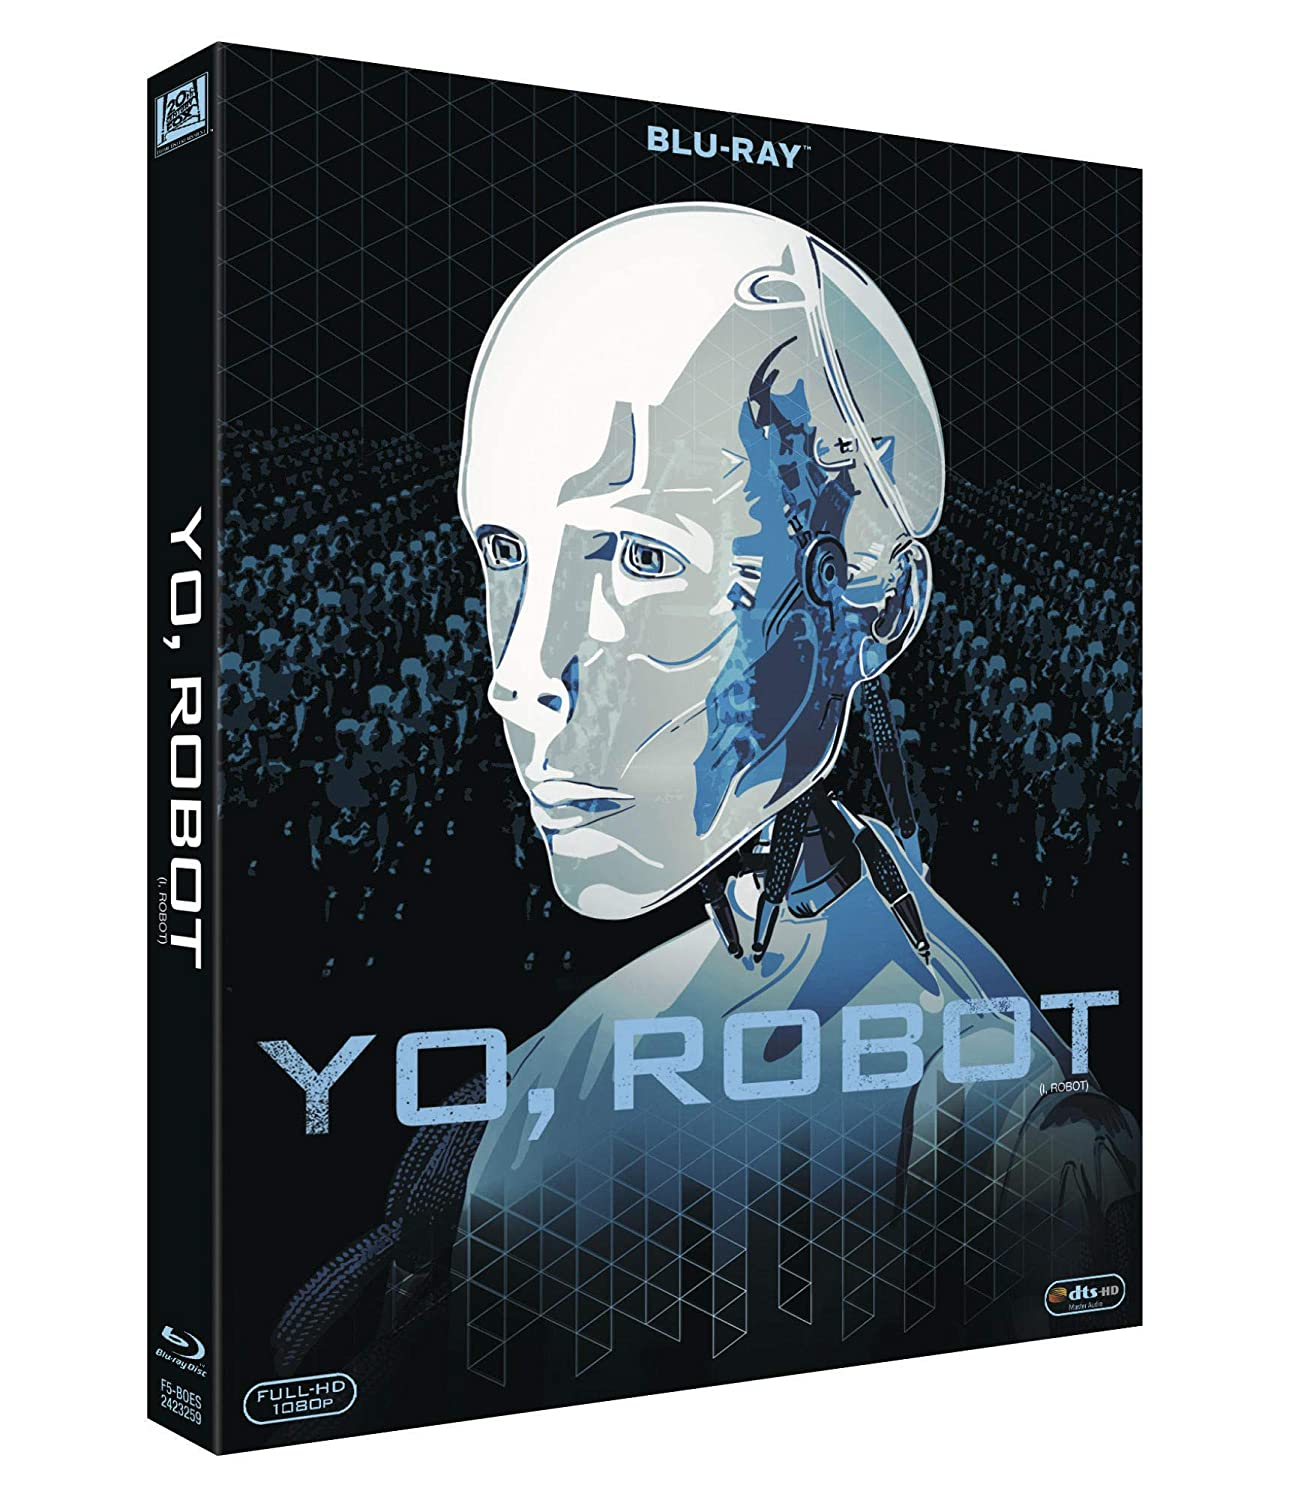 Yo, Robot Blu-Ray - Iconic [Blu-ray]: Amazon.es: Will Smith, Bridget Moynahan, Bruce Greenwood, Chi Mcbride, Alan Tudyk, Alex Proyas, Will Smith, Bridget Moynahan: Cine y Series TV